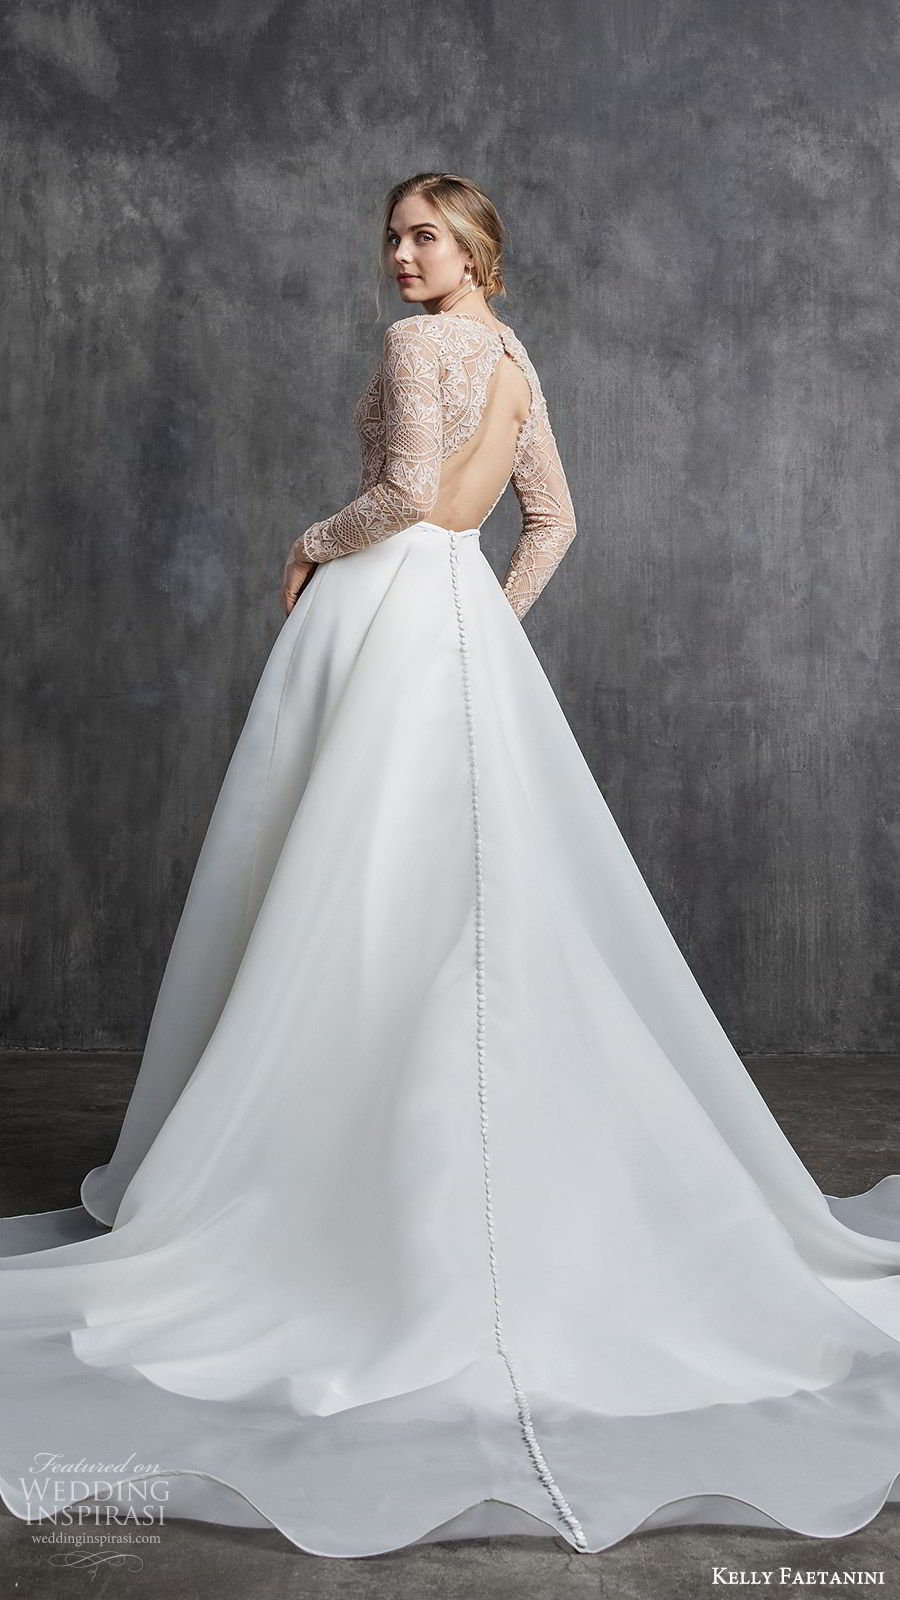 kelly faetanini spring 2020 bridal illusion long sleeves v neckline lace bodice fit flare modified a line ball gown wedding dress (2) chapel train elegant nude color keyhole back bv